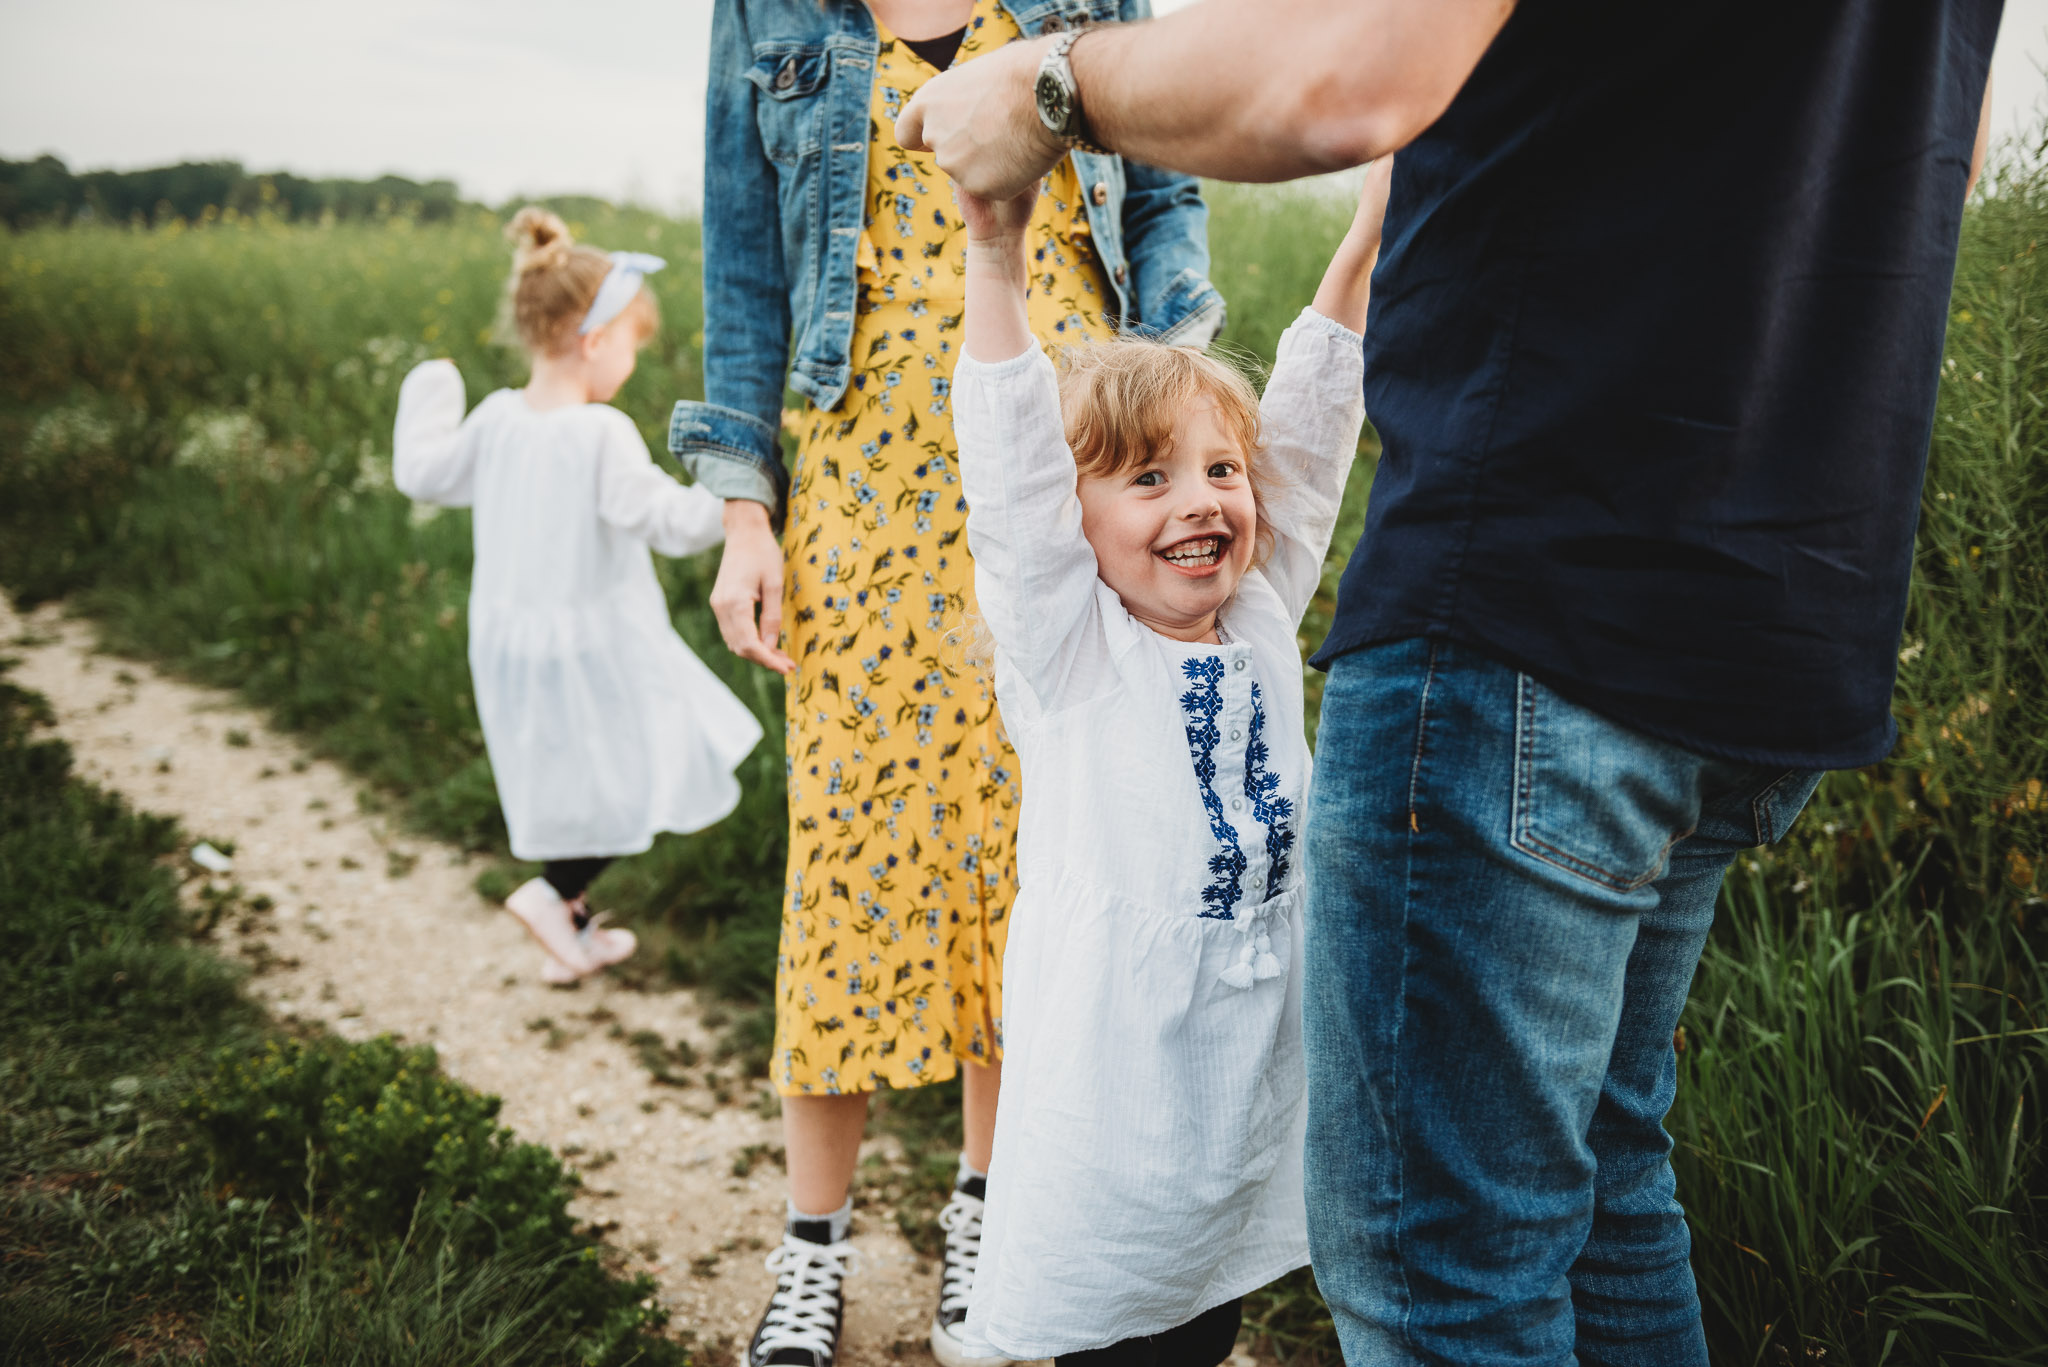 cambridgeshire family photographer-44.jpg